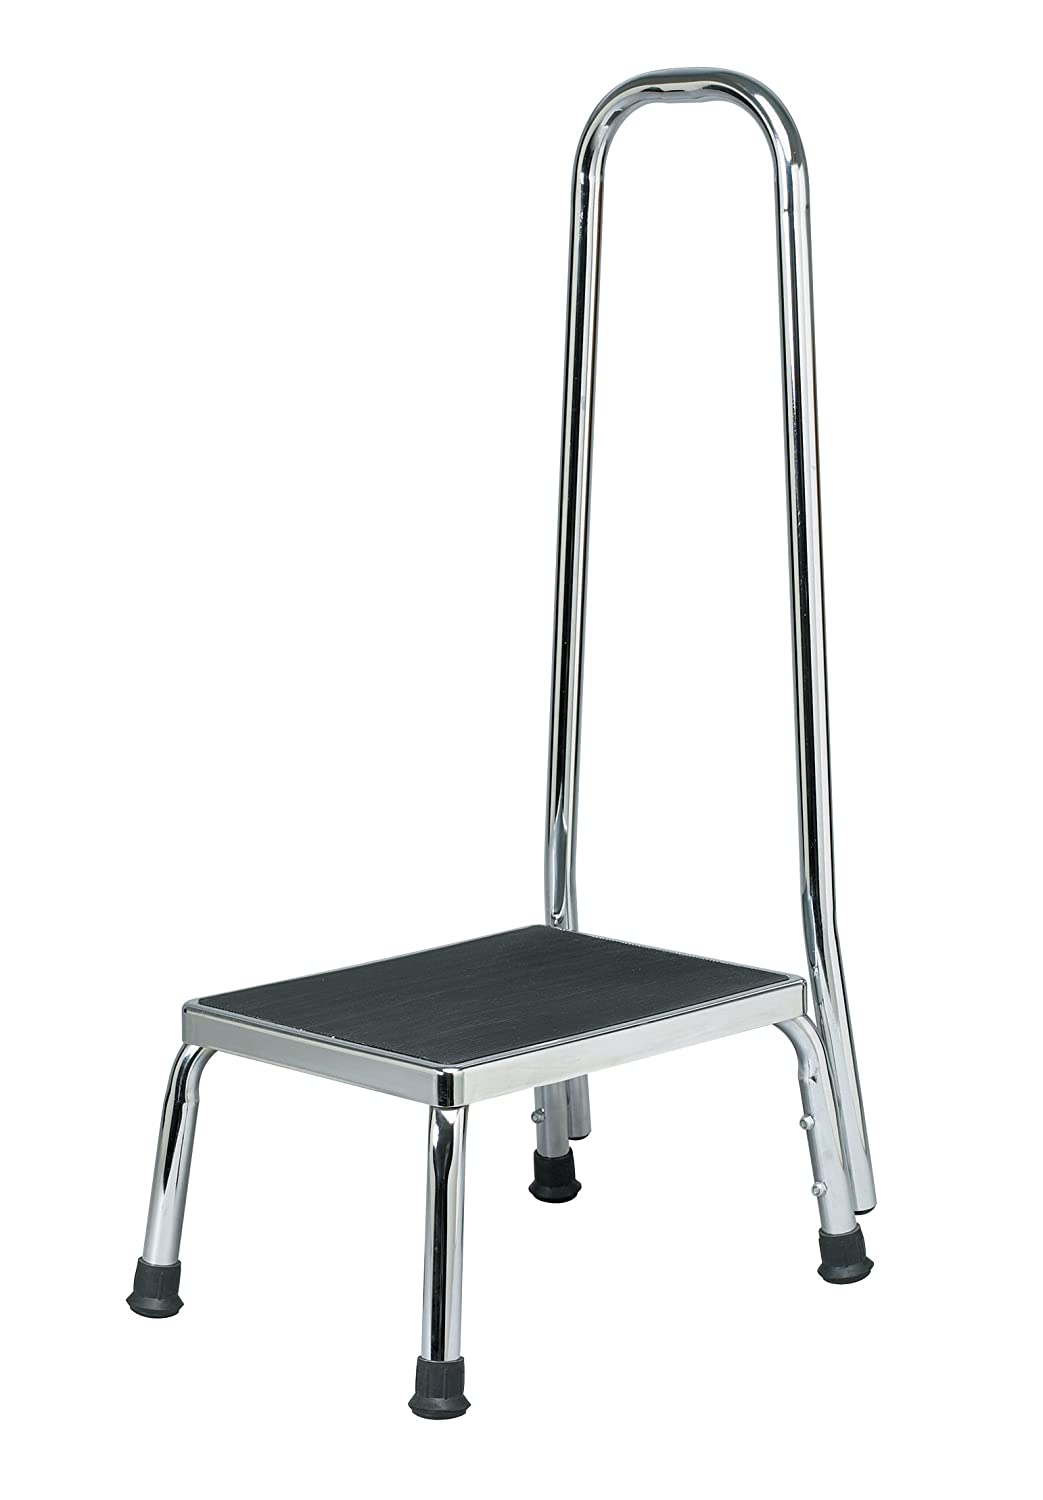 Patterson Medical Chrome Plated Step Stool with Handle Amazon.co.uk Business Industry u0026 Science  sc 1 st  Amazon UK & Patterson Medical Chrome Plated Step Stool with Handle: Amazon.co ... islam-shia.org